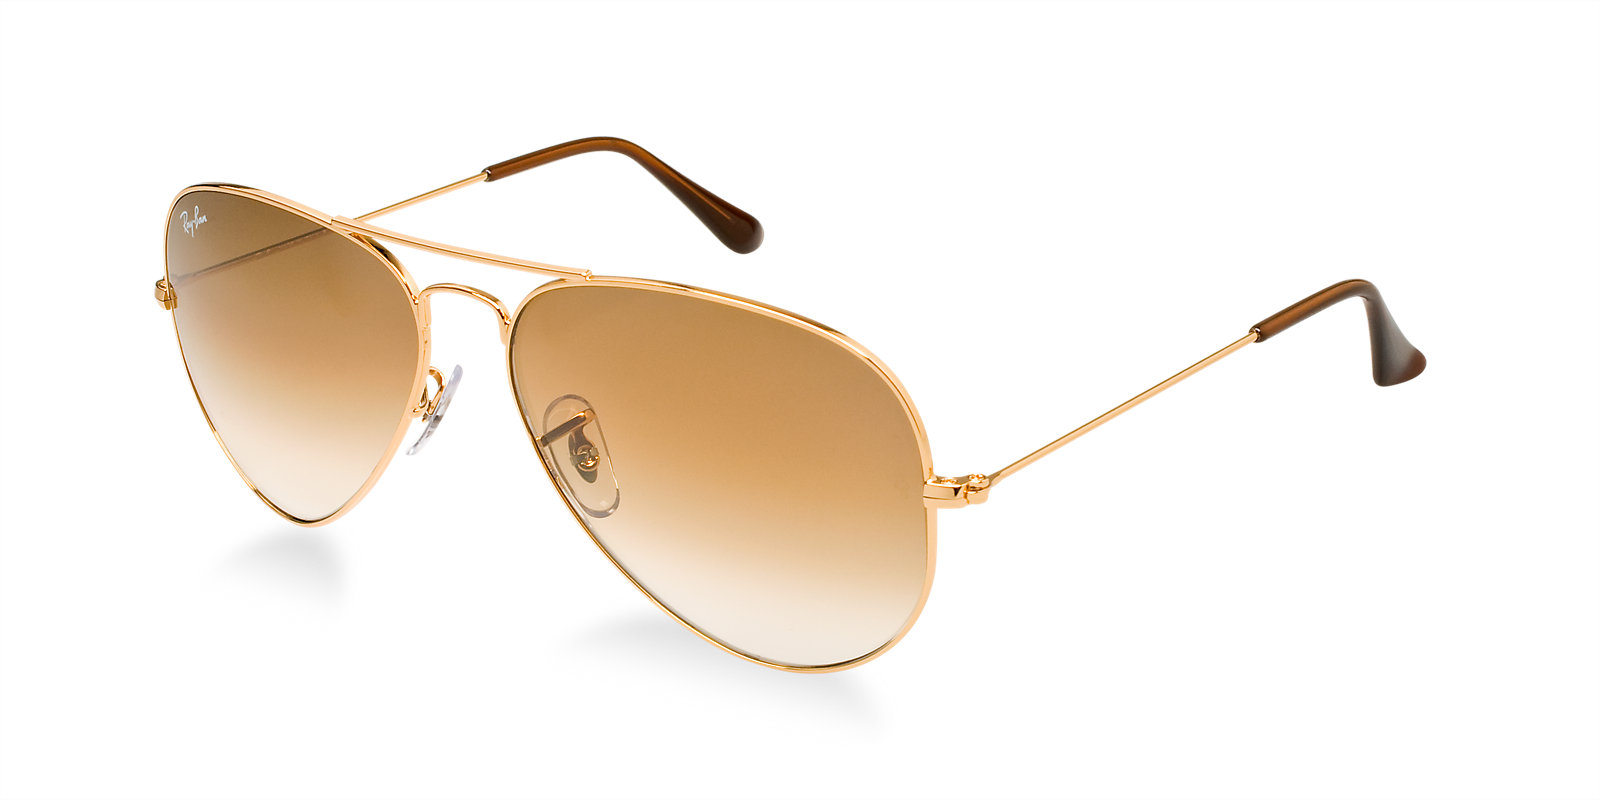 Previous  Next. Previous  Next. RAY-BAN RB3025 001 51 GOLD GRADIENT AVIATOR  SUNGLASSES 48d694dc20